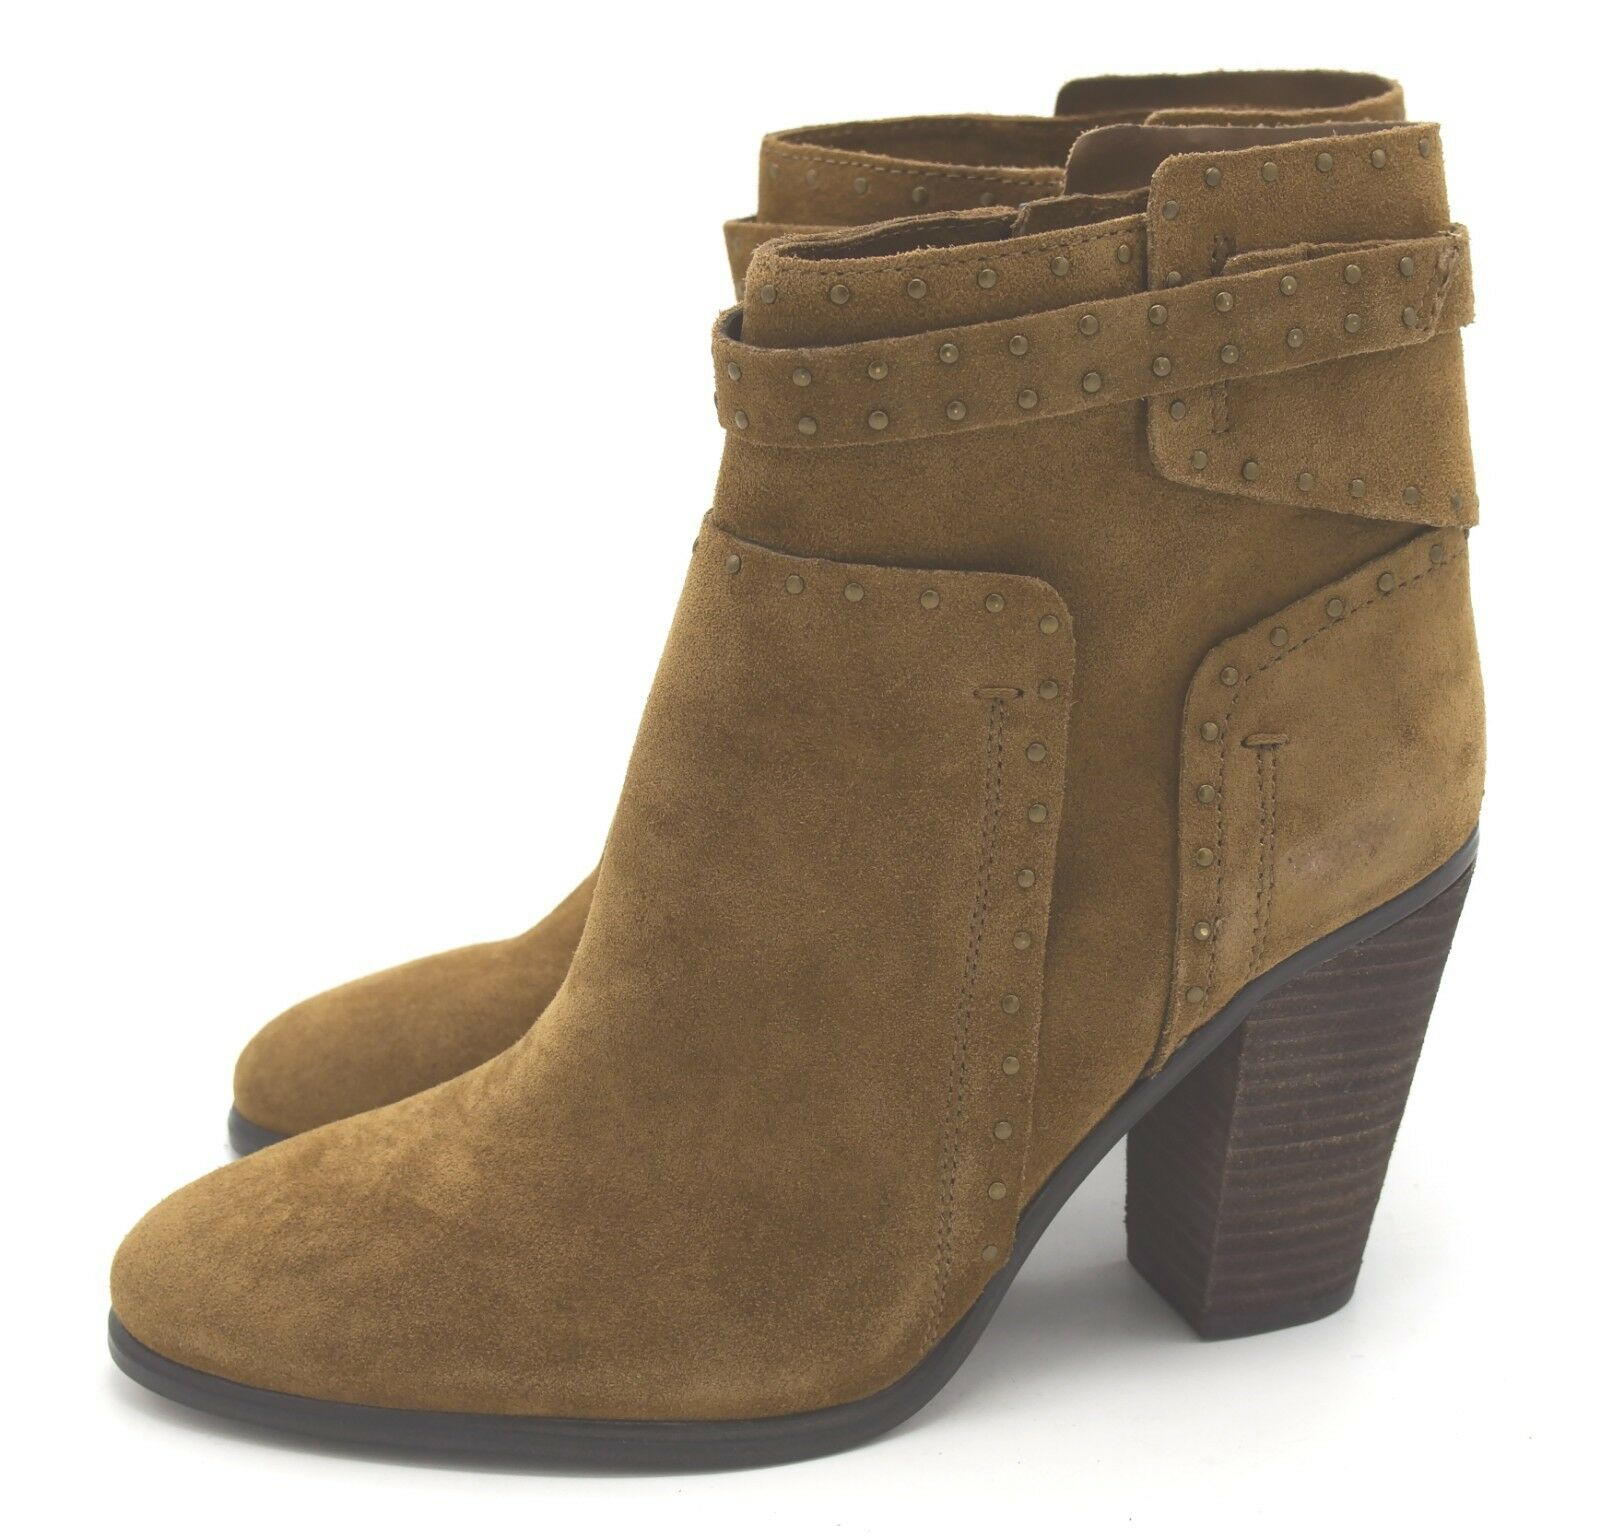 J6663 New Womens Vince Camuto Faythes Boulder Suede Leather Bootie 8 M